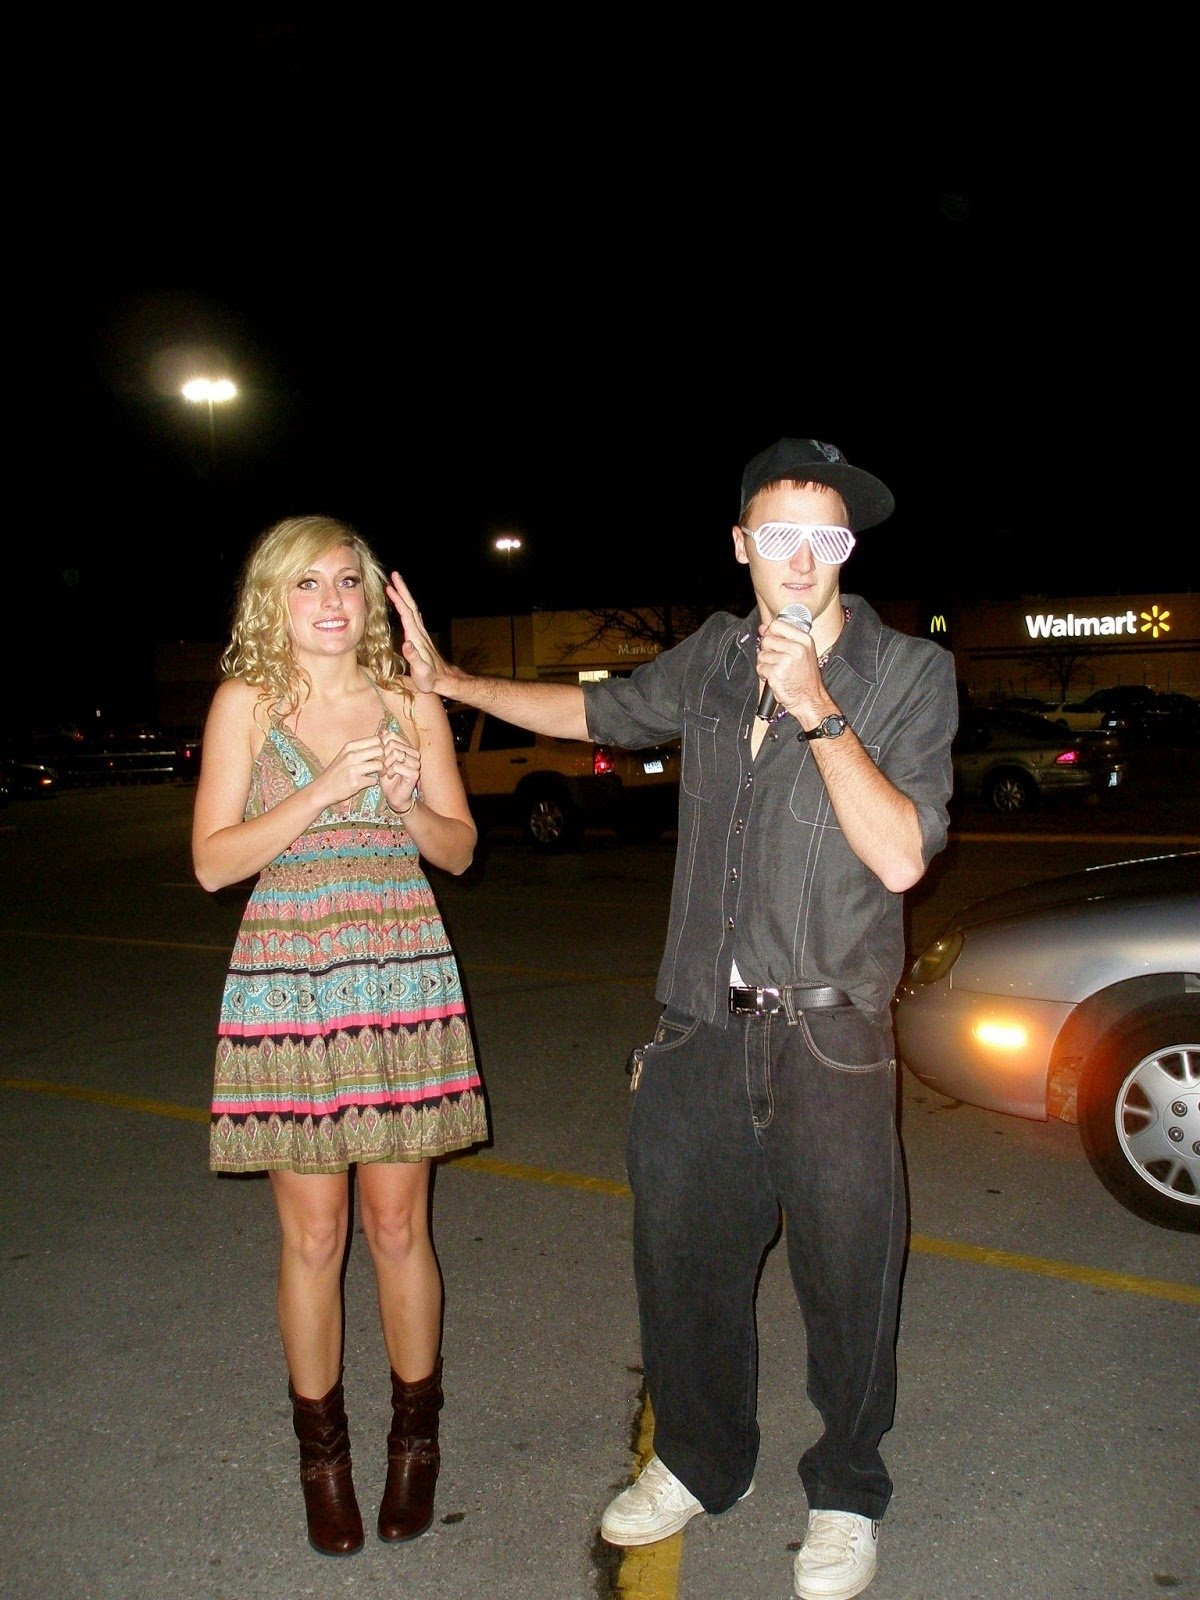 10 Amazing 2013 Best Halloween Costume Ideas katie in kansas diy couples halloween costume ideas 10 2020